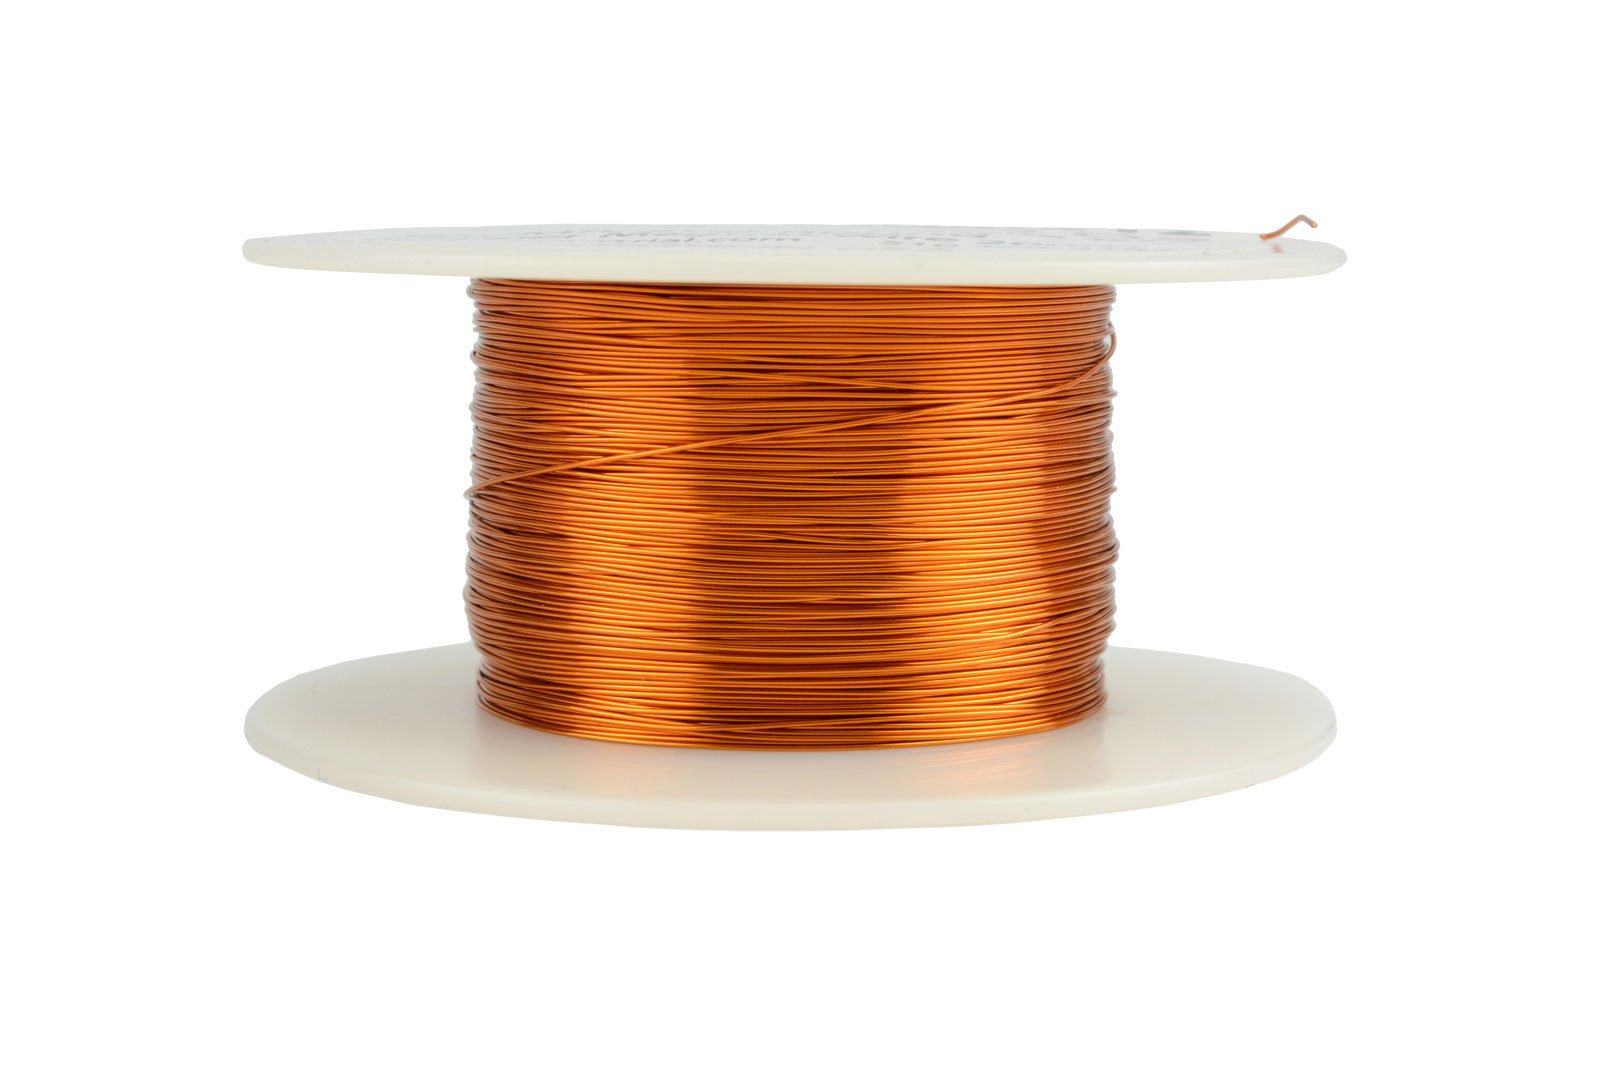 TEMCo 28 AWG Copper Magnet Wire - 4 oz 497 ft